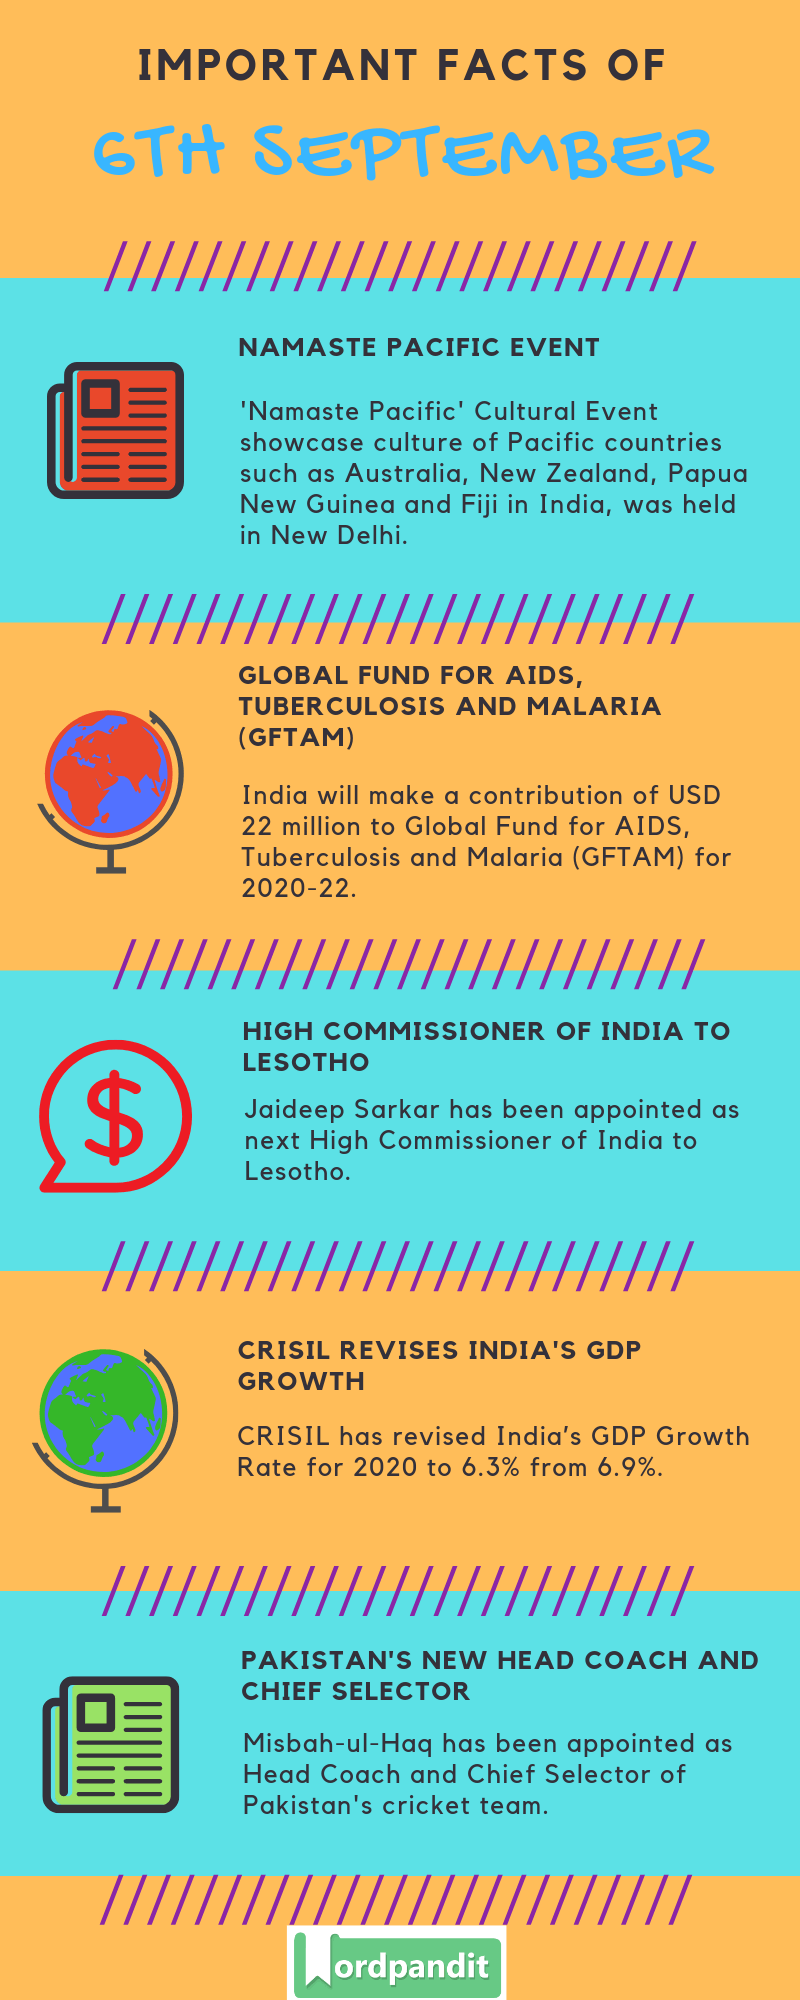 Daily Current Affairs 6 September 2019 Current Affairs Quiz 6 September 2019 Current Affairs Infographic